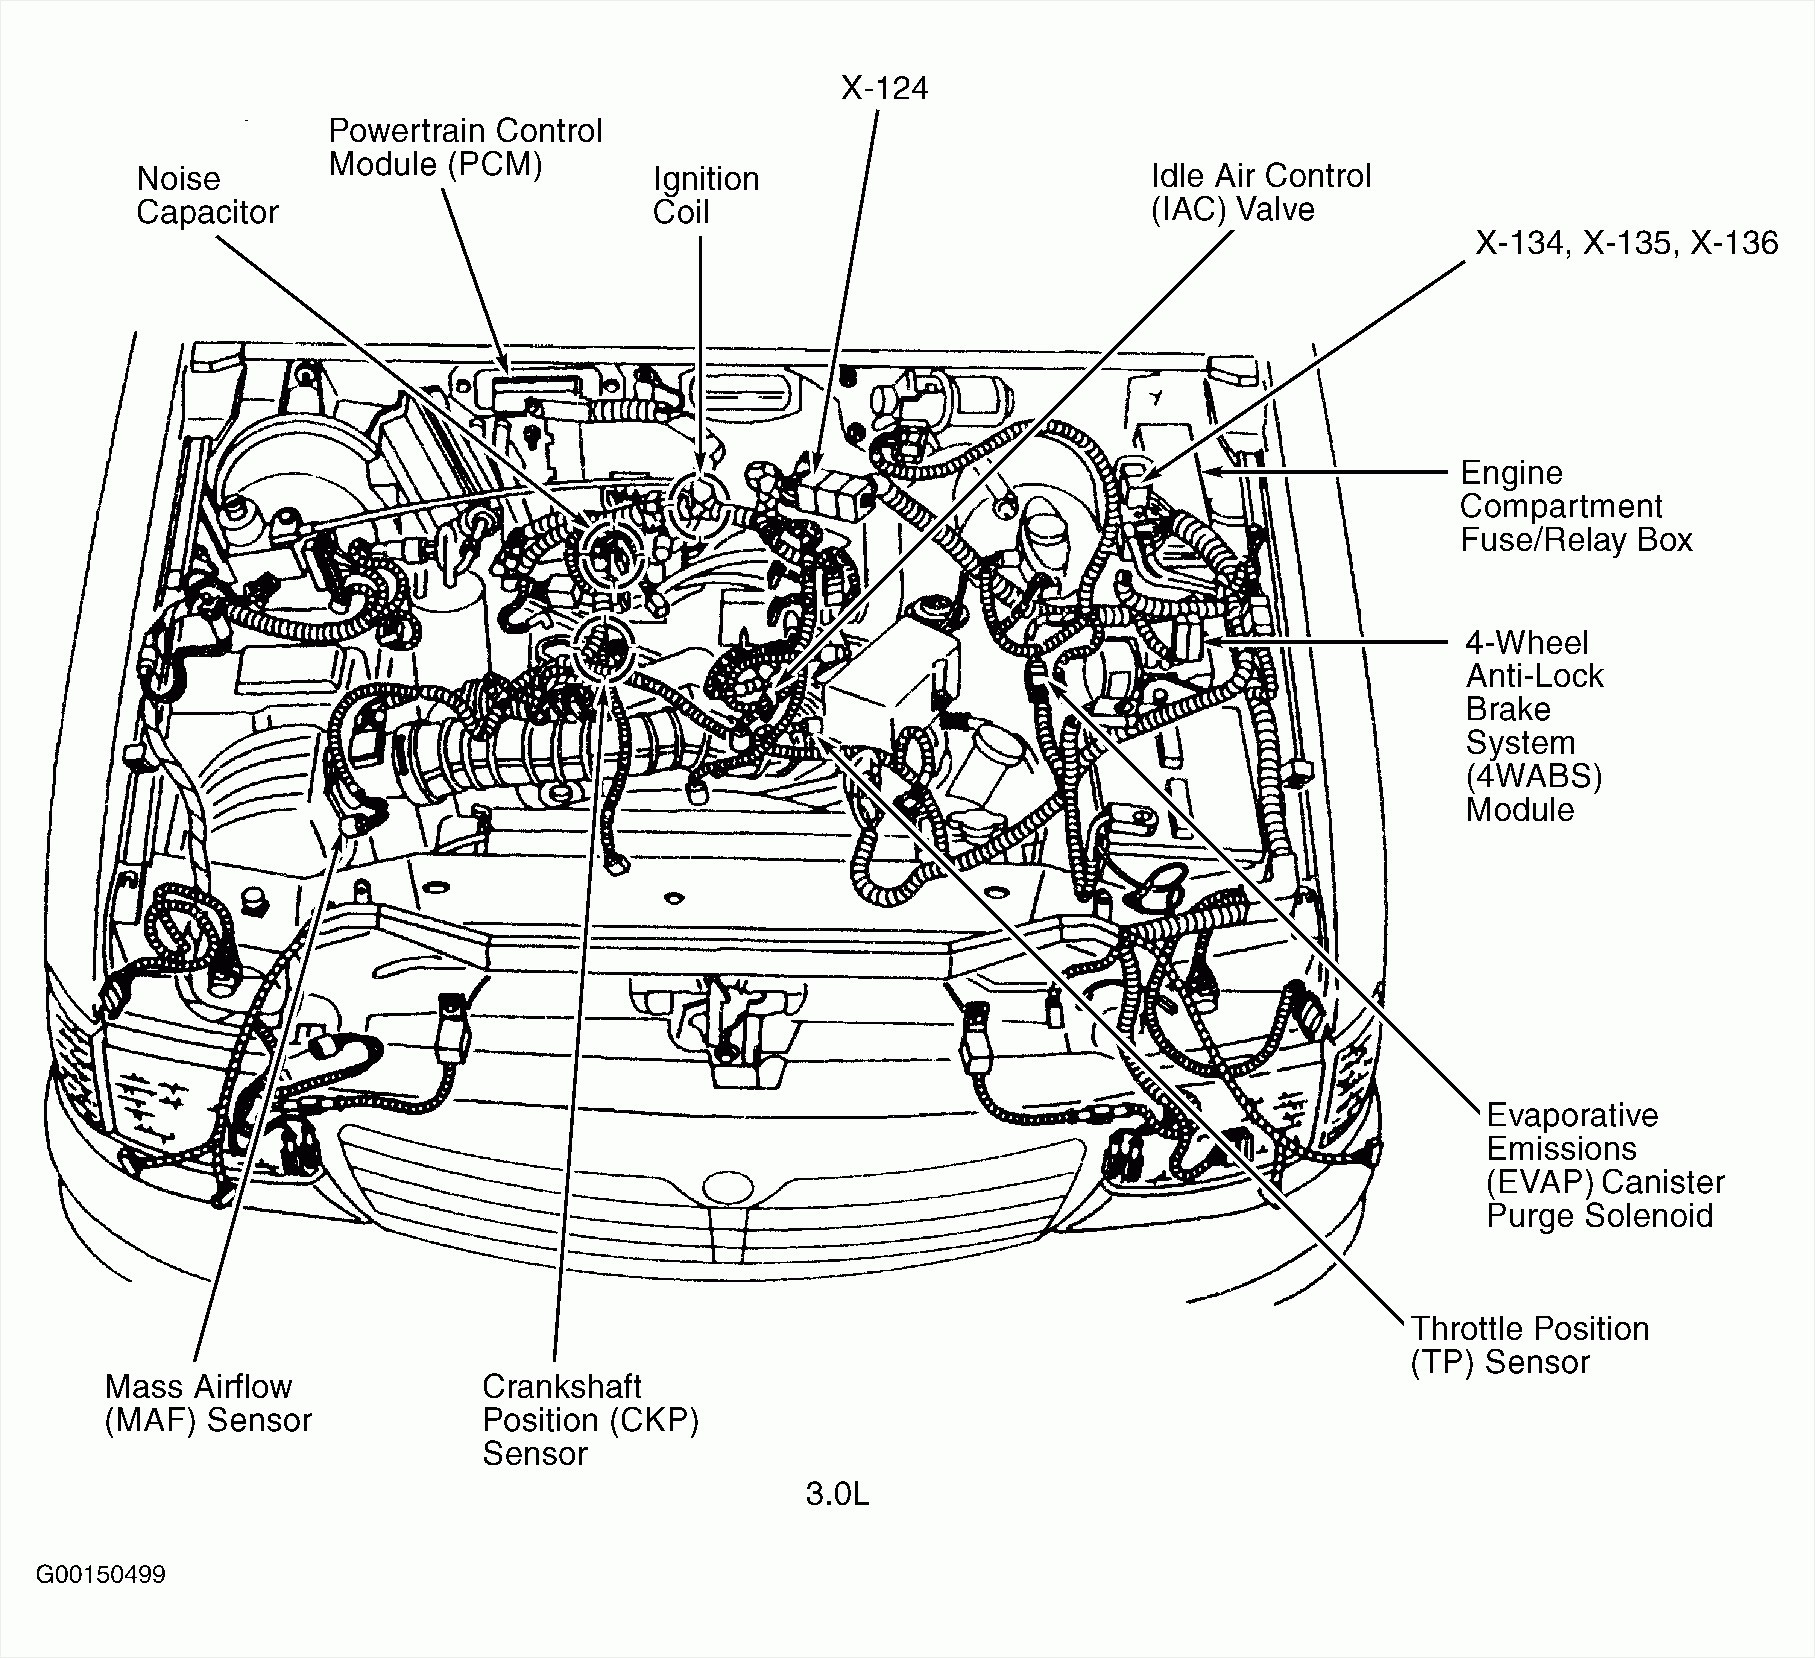 1998 Ford Mustang Engine Diagram 2008 Bmw 328i Ranger 3 0 V6 Wiring Diagrams Instructions